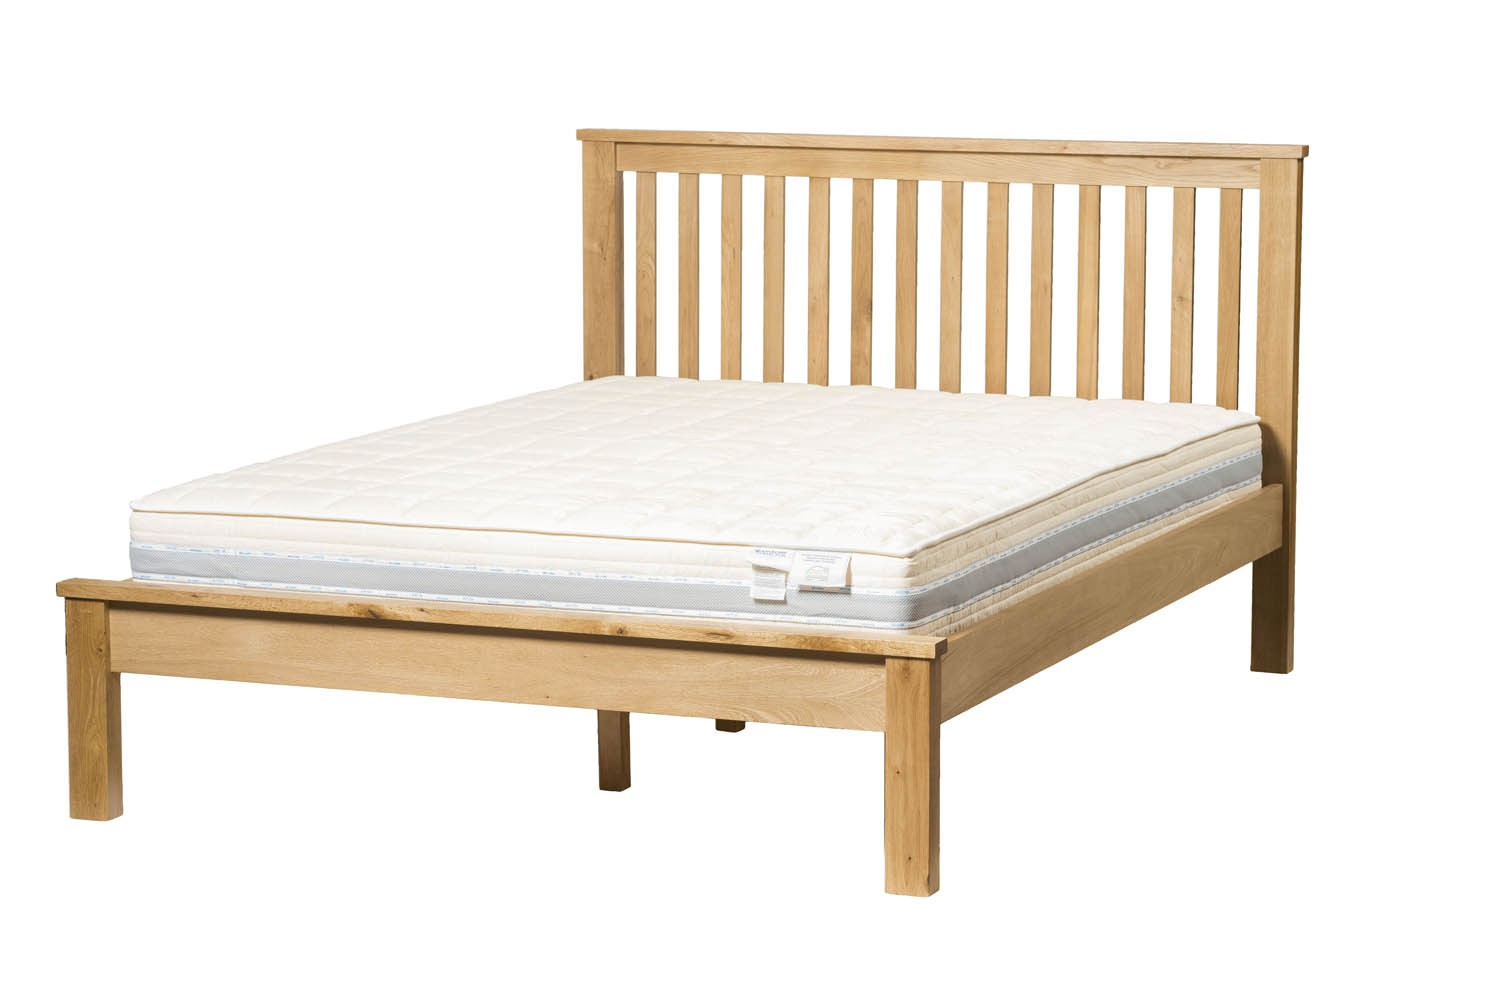 Waverly Double Bed Frame